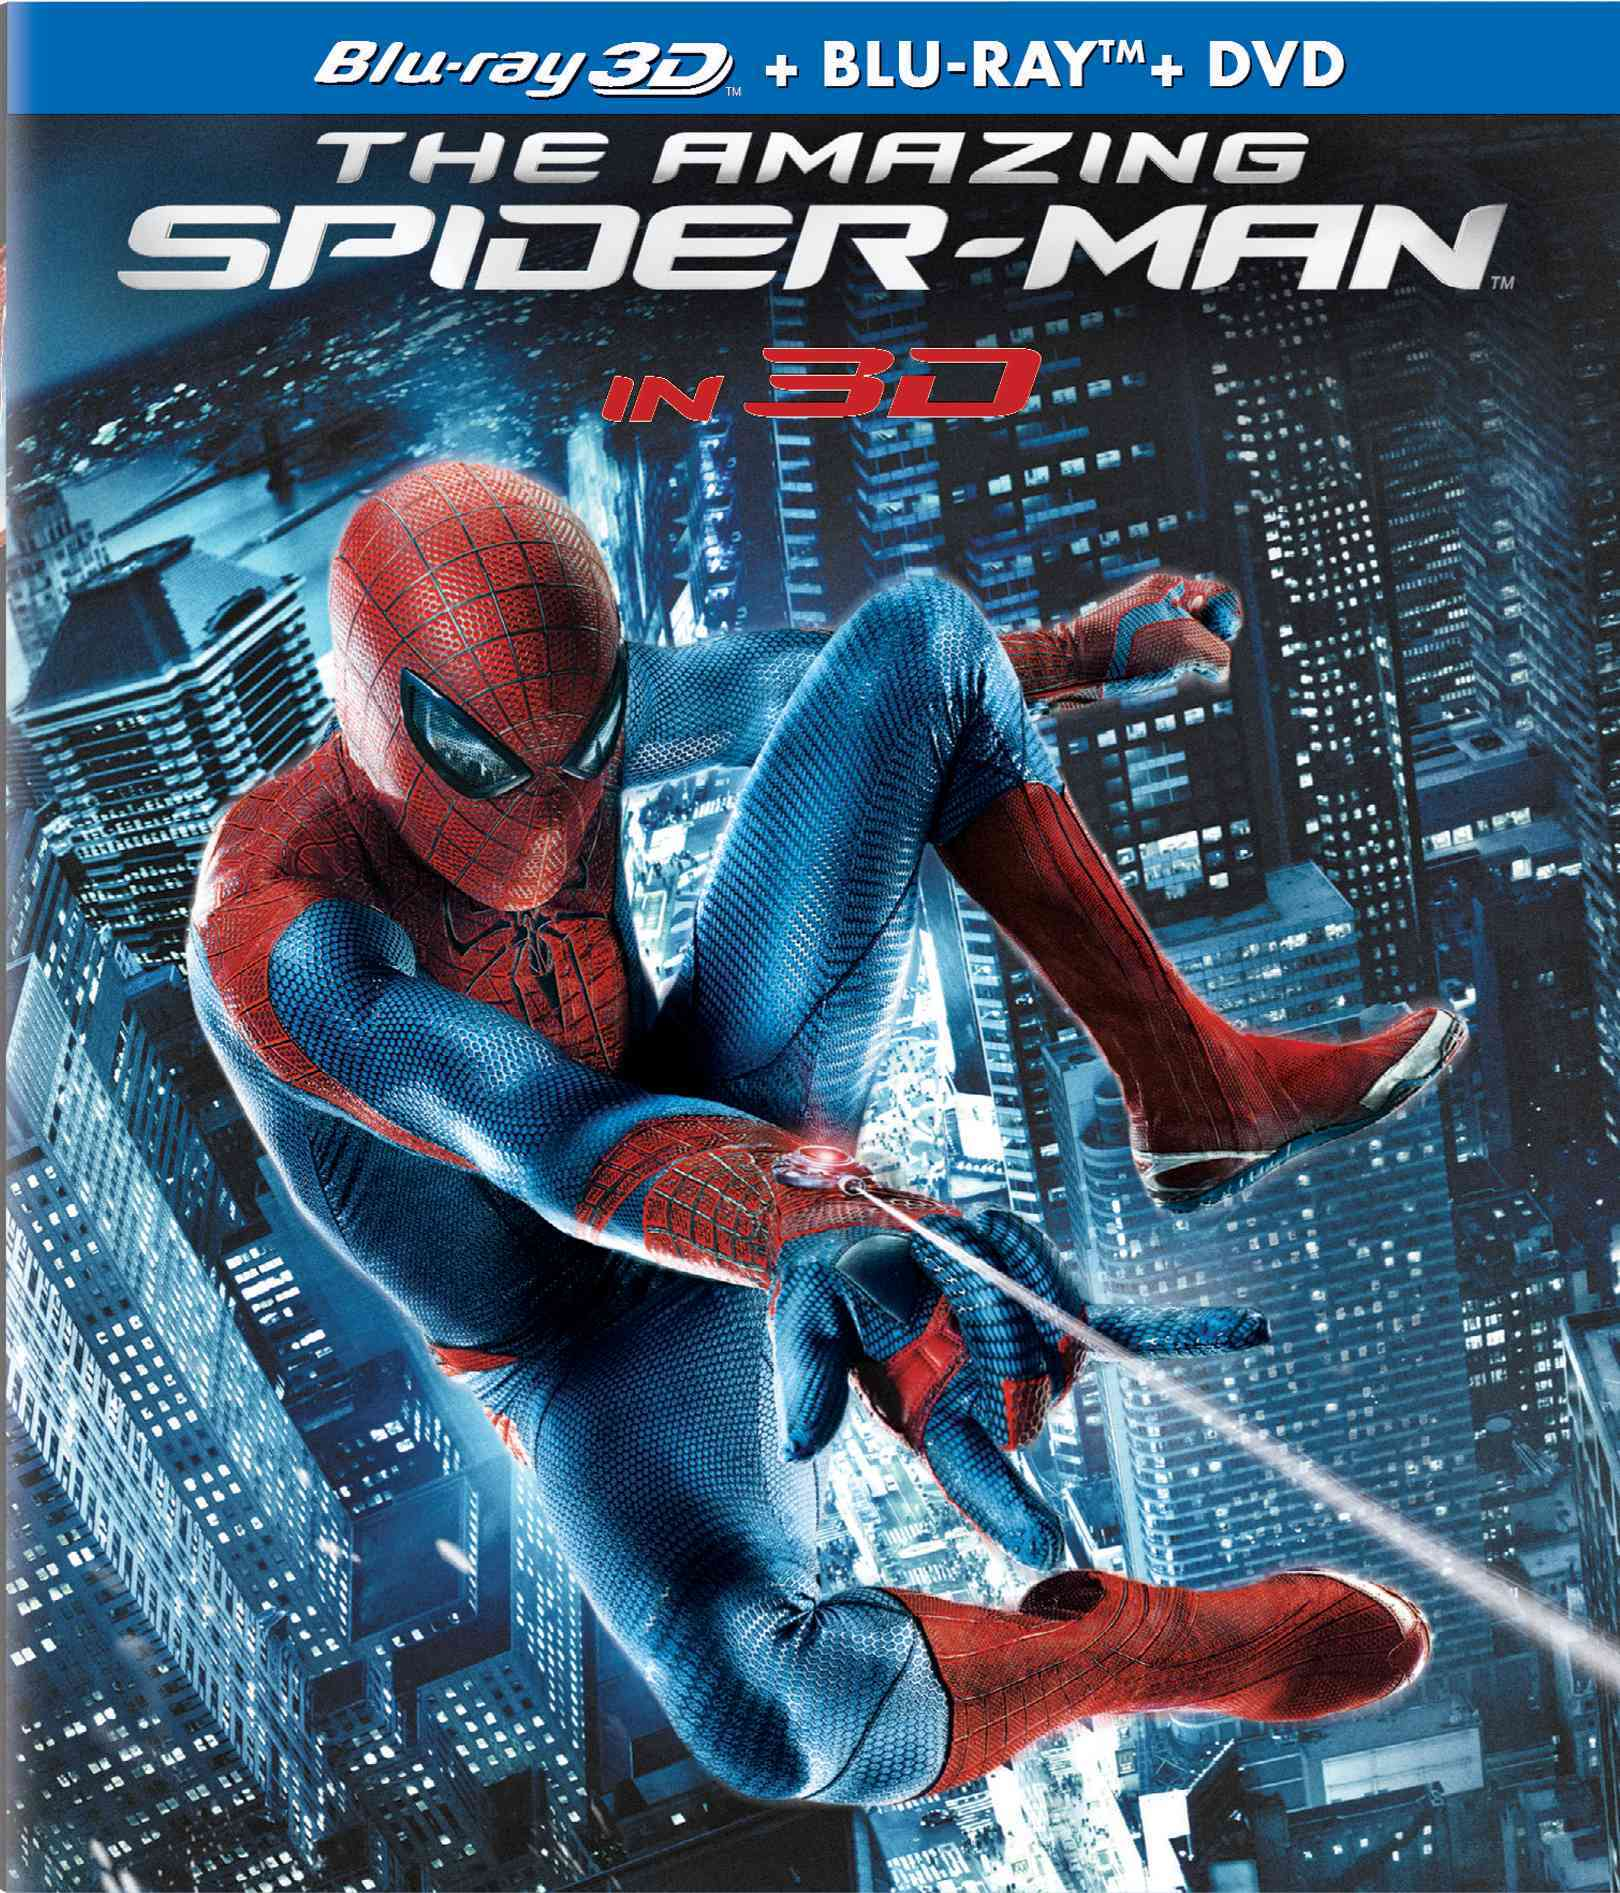 AMAZING SPIDER MAN 3D BY GARFIELD,ANDREW (Blu-Ray)